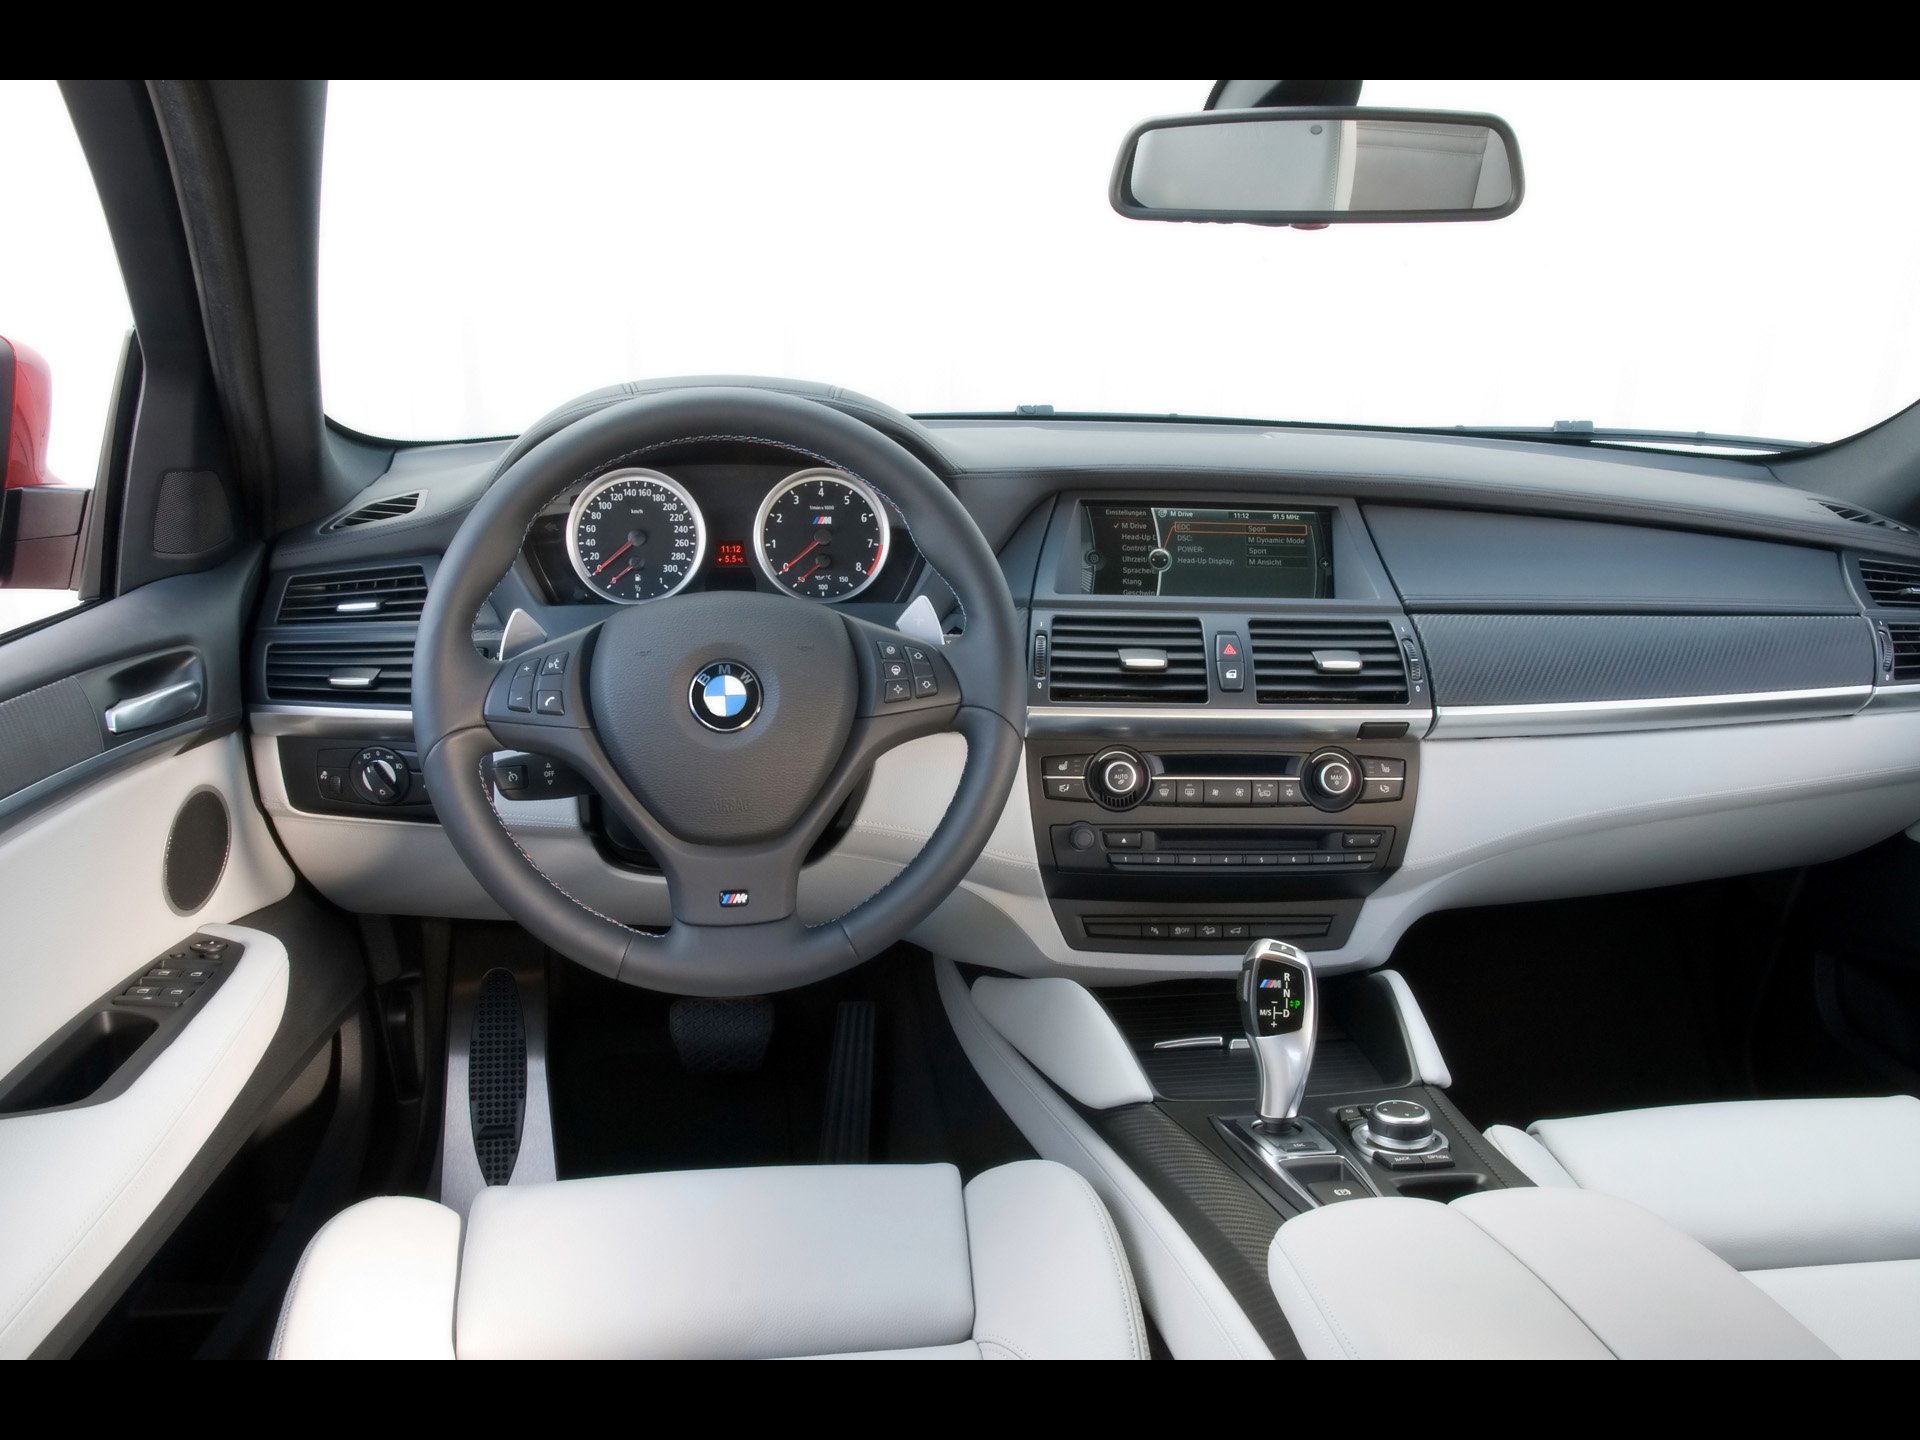 1920x1440 BMW X6 M interior desktop wallpapers and stock photos